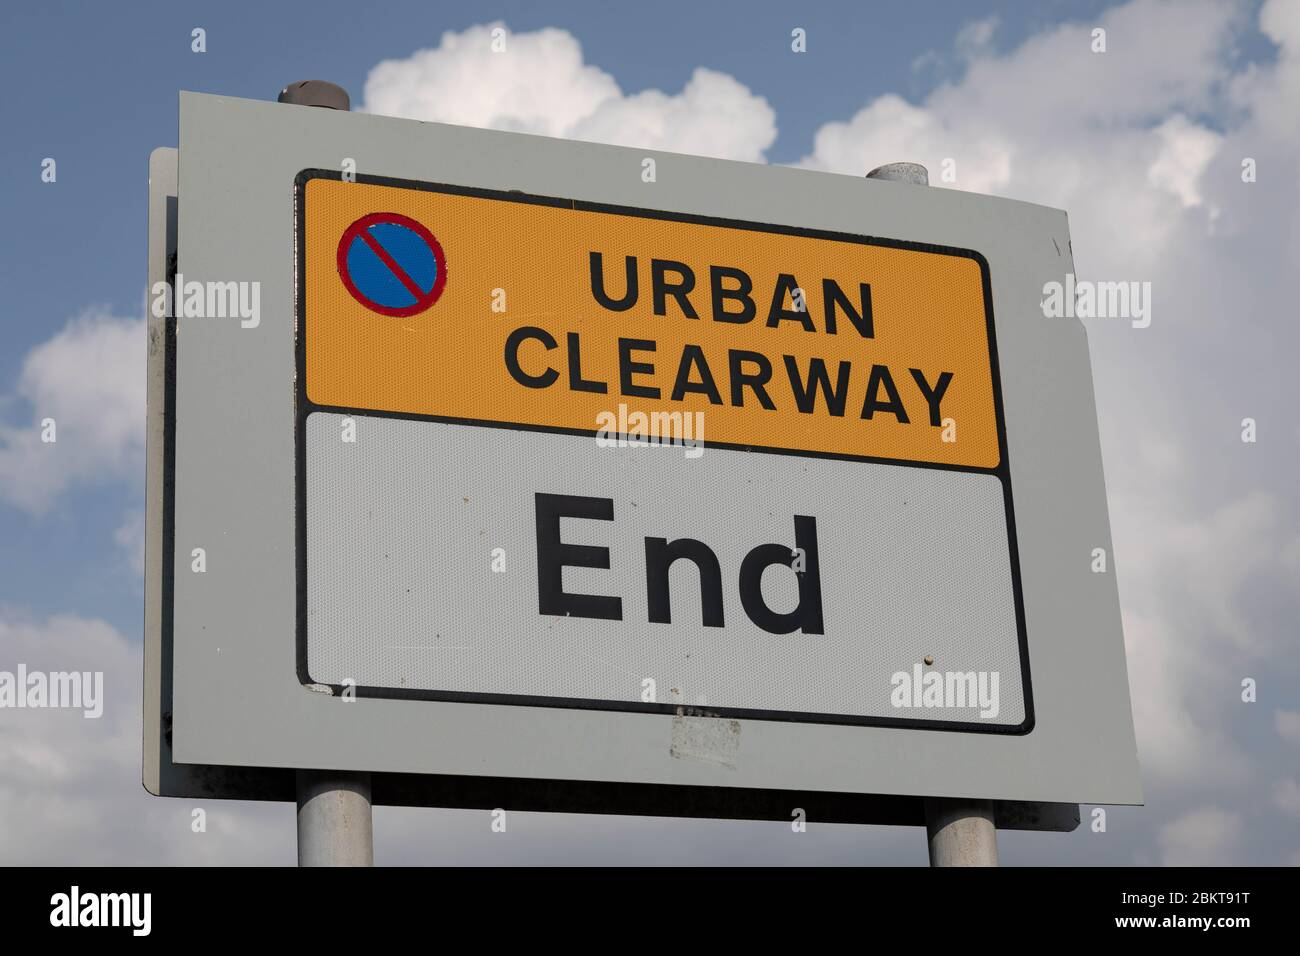 roadside sign indicating end of urban clearway at Birkenhead Wirral August 2019 Stock Photo